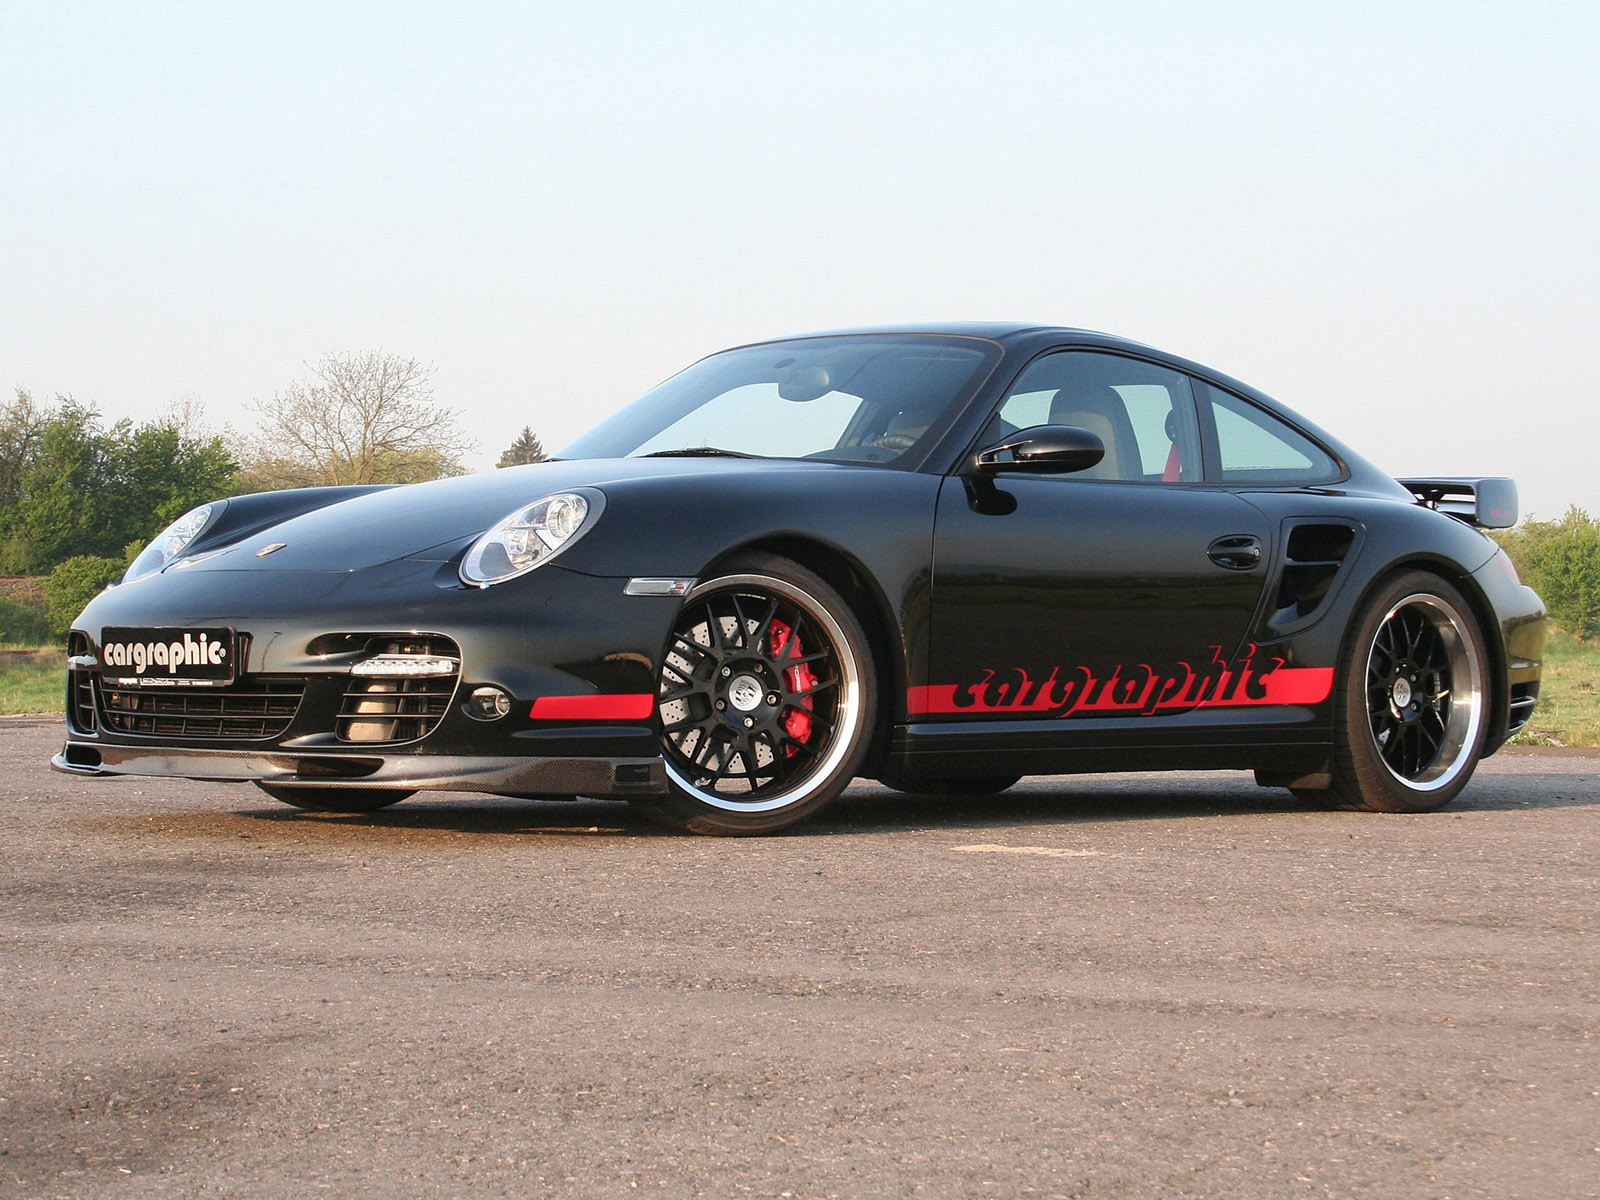 2009 Cargraphic - Porsche 911 Turbo RSC 997